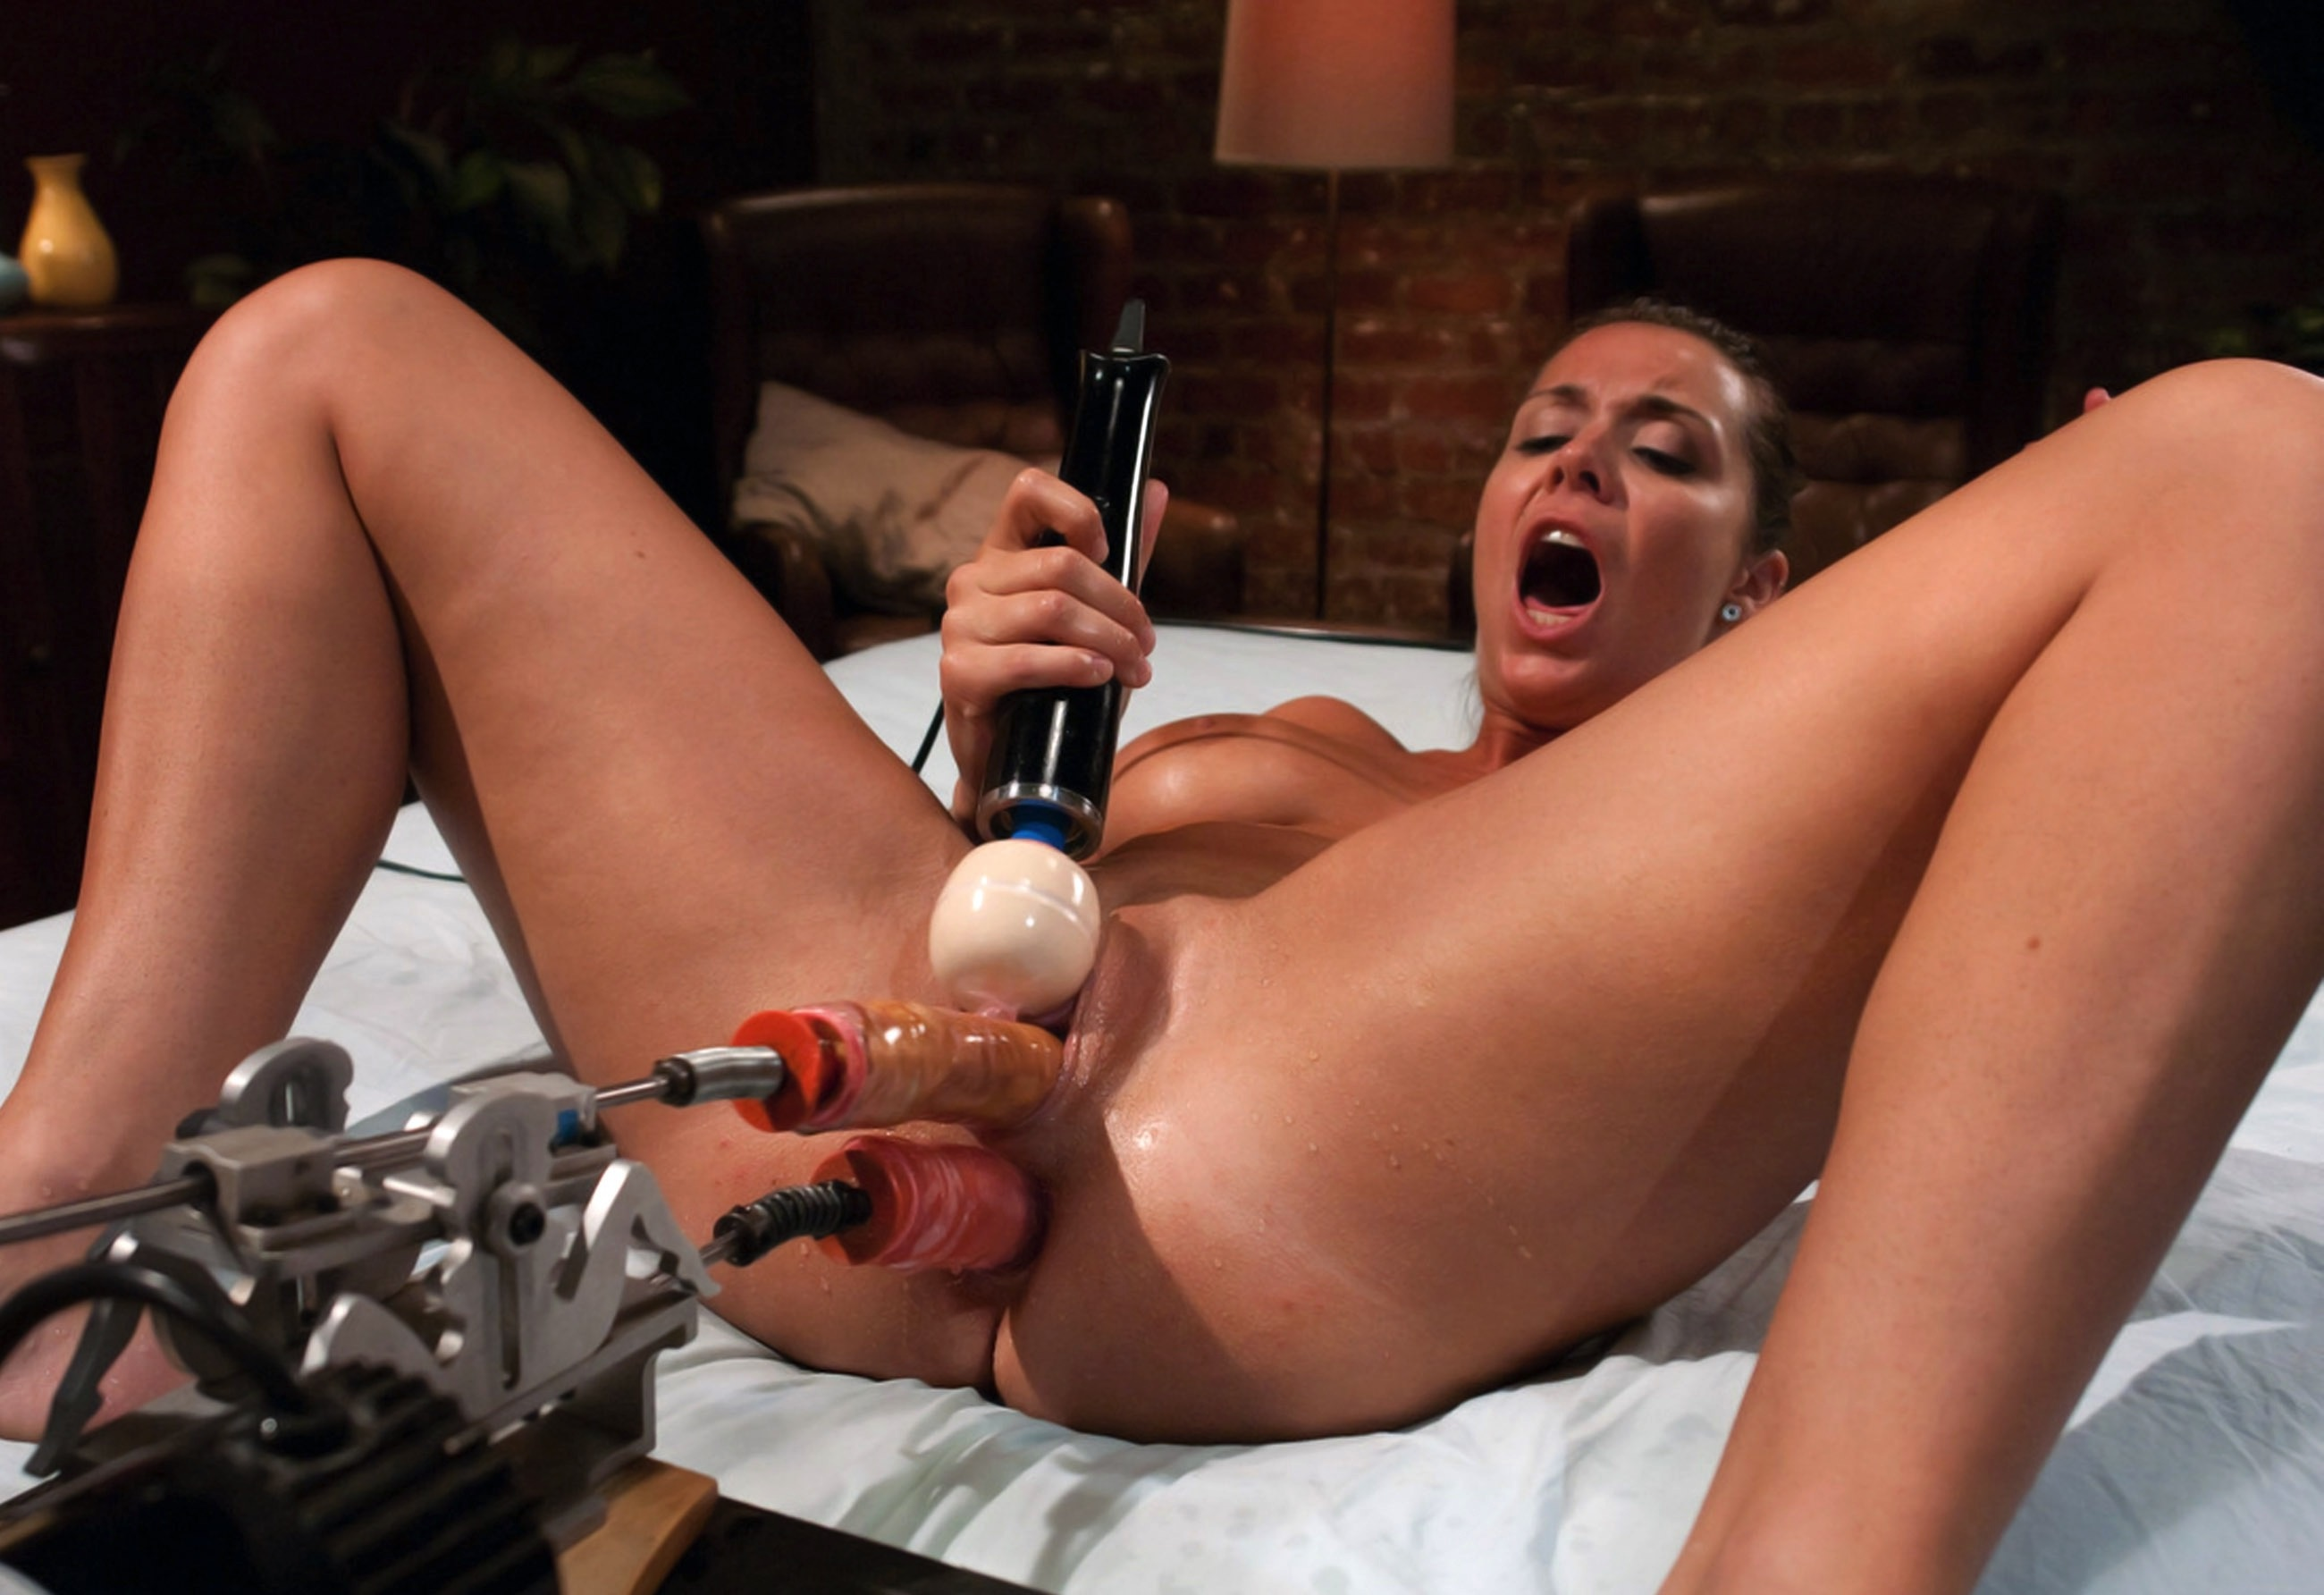 female on female sex dildo fuck machine